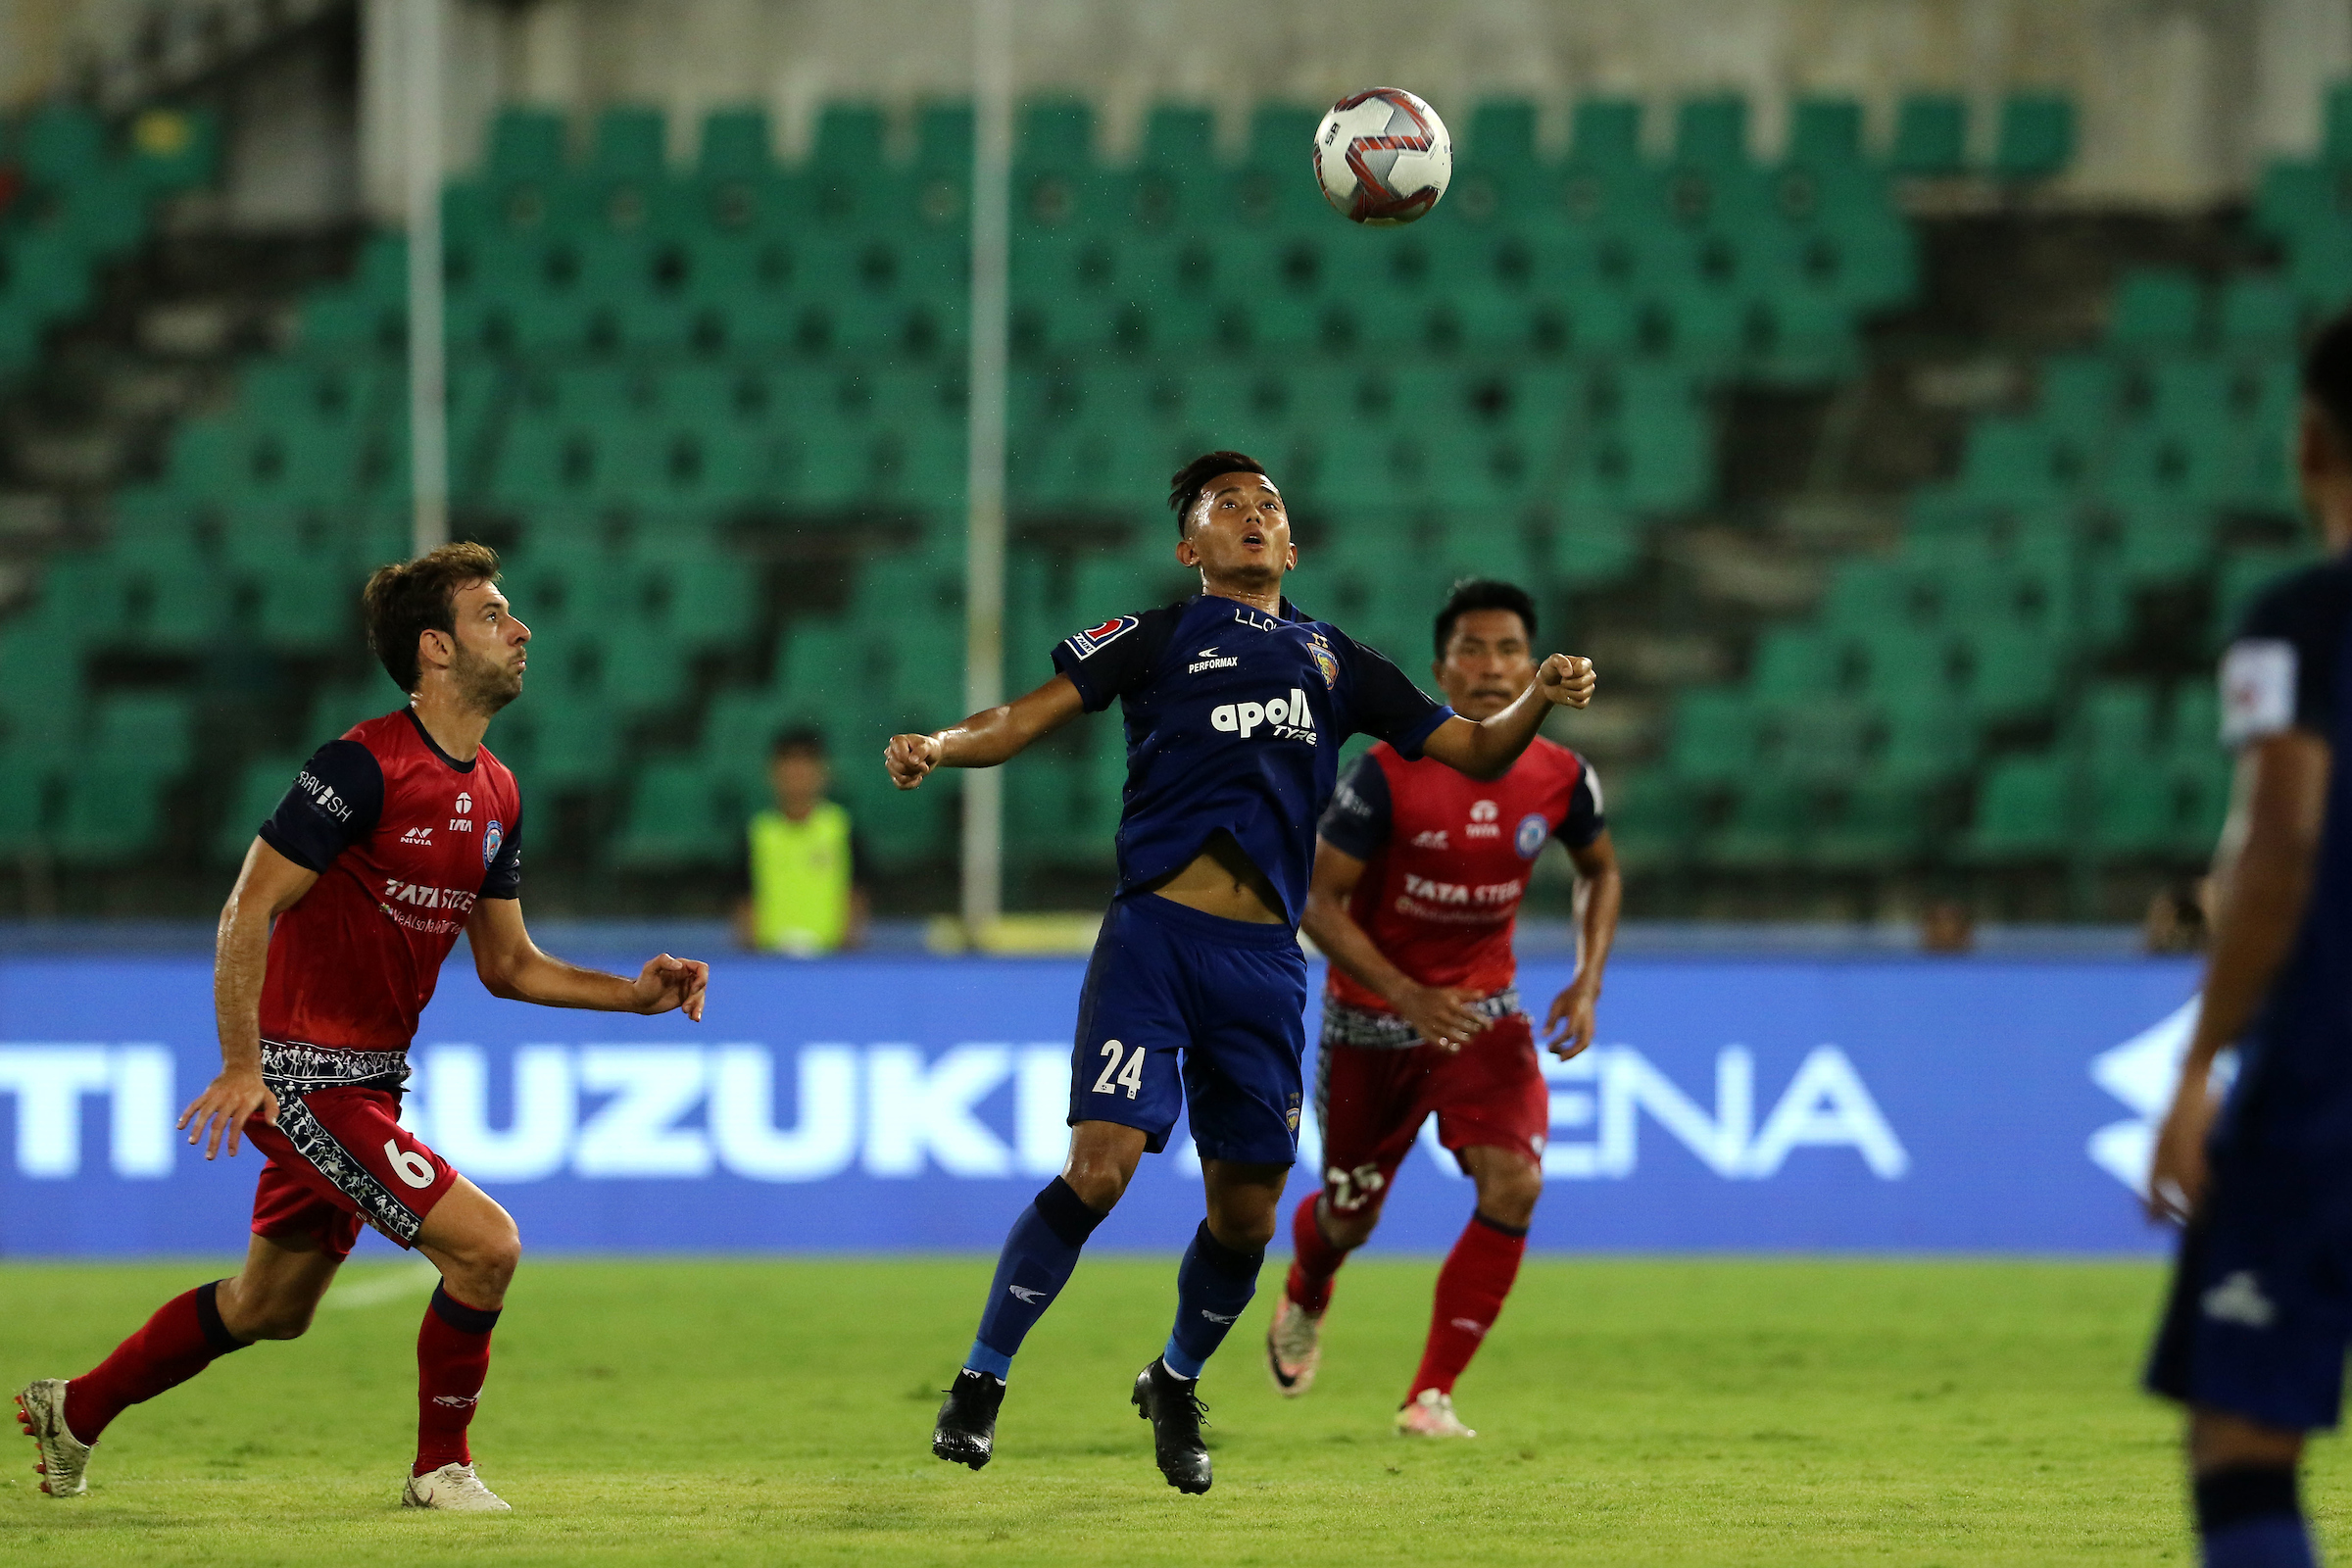 ISL: Isaac Vanmalsawma set to leave Chennaiyin FC to sign for Jamshedpur FC